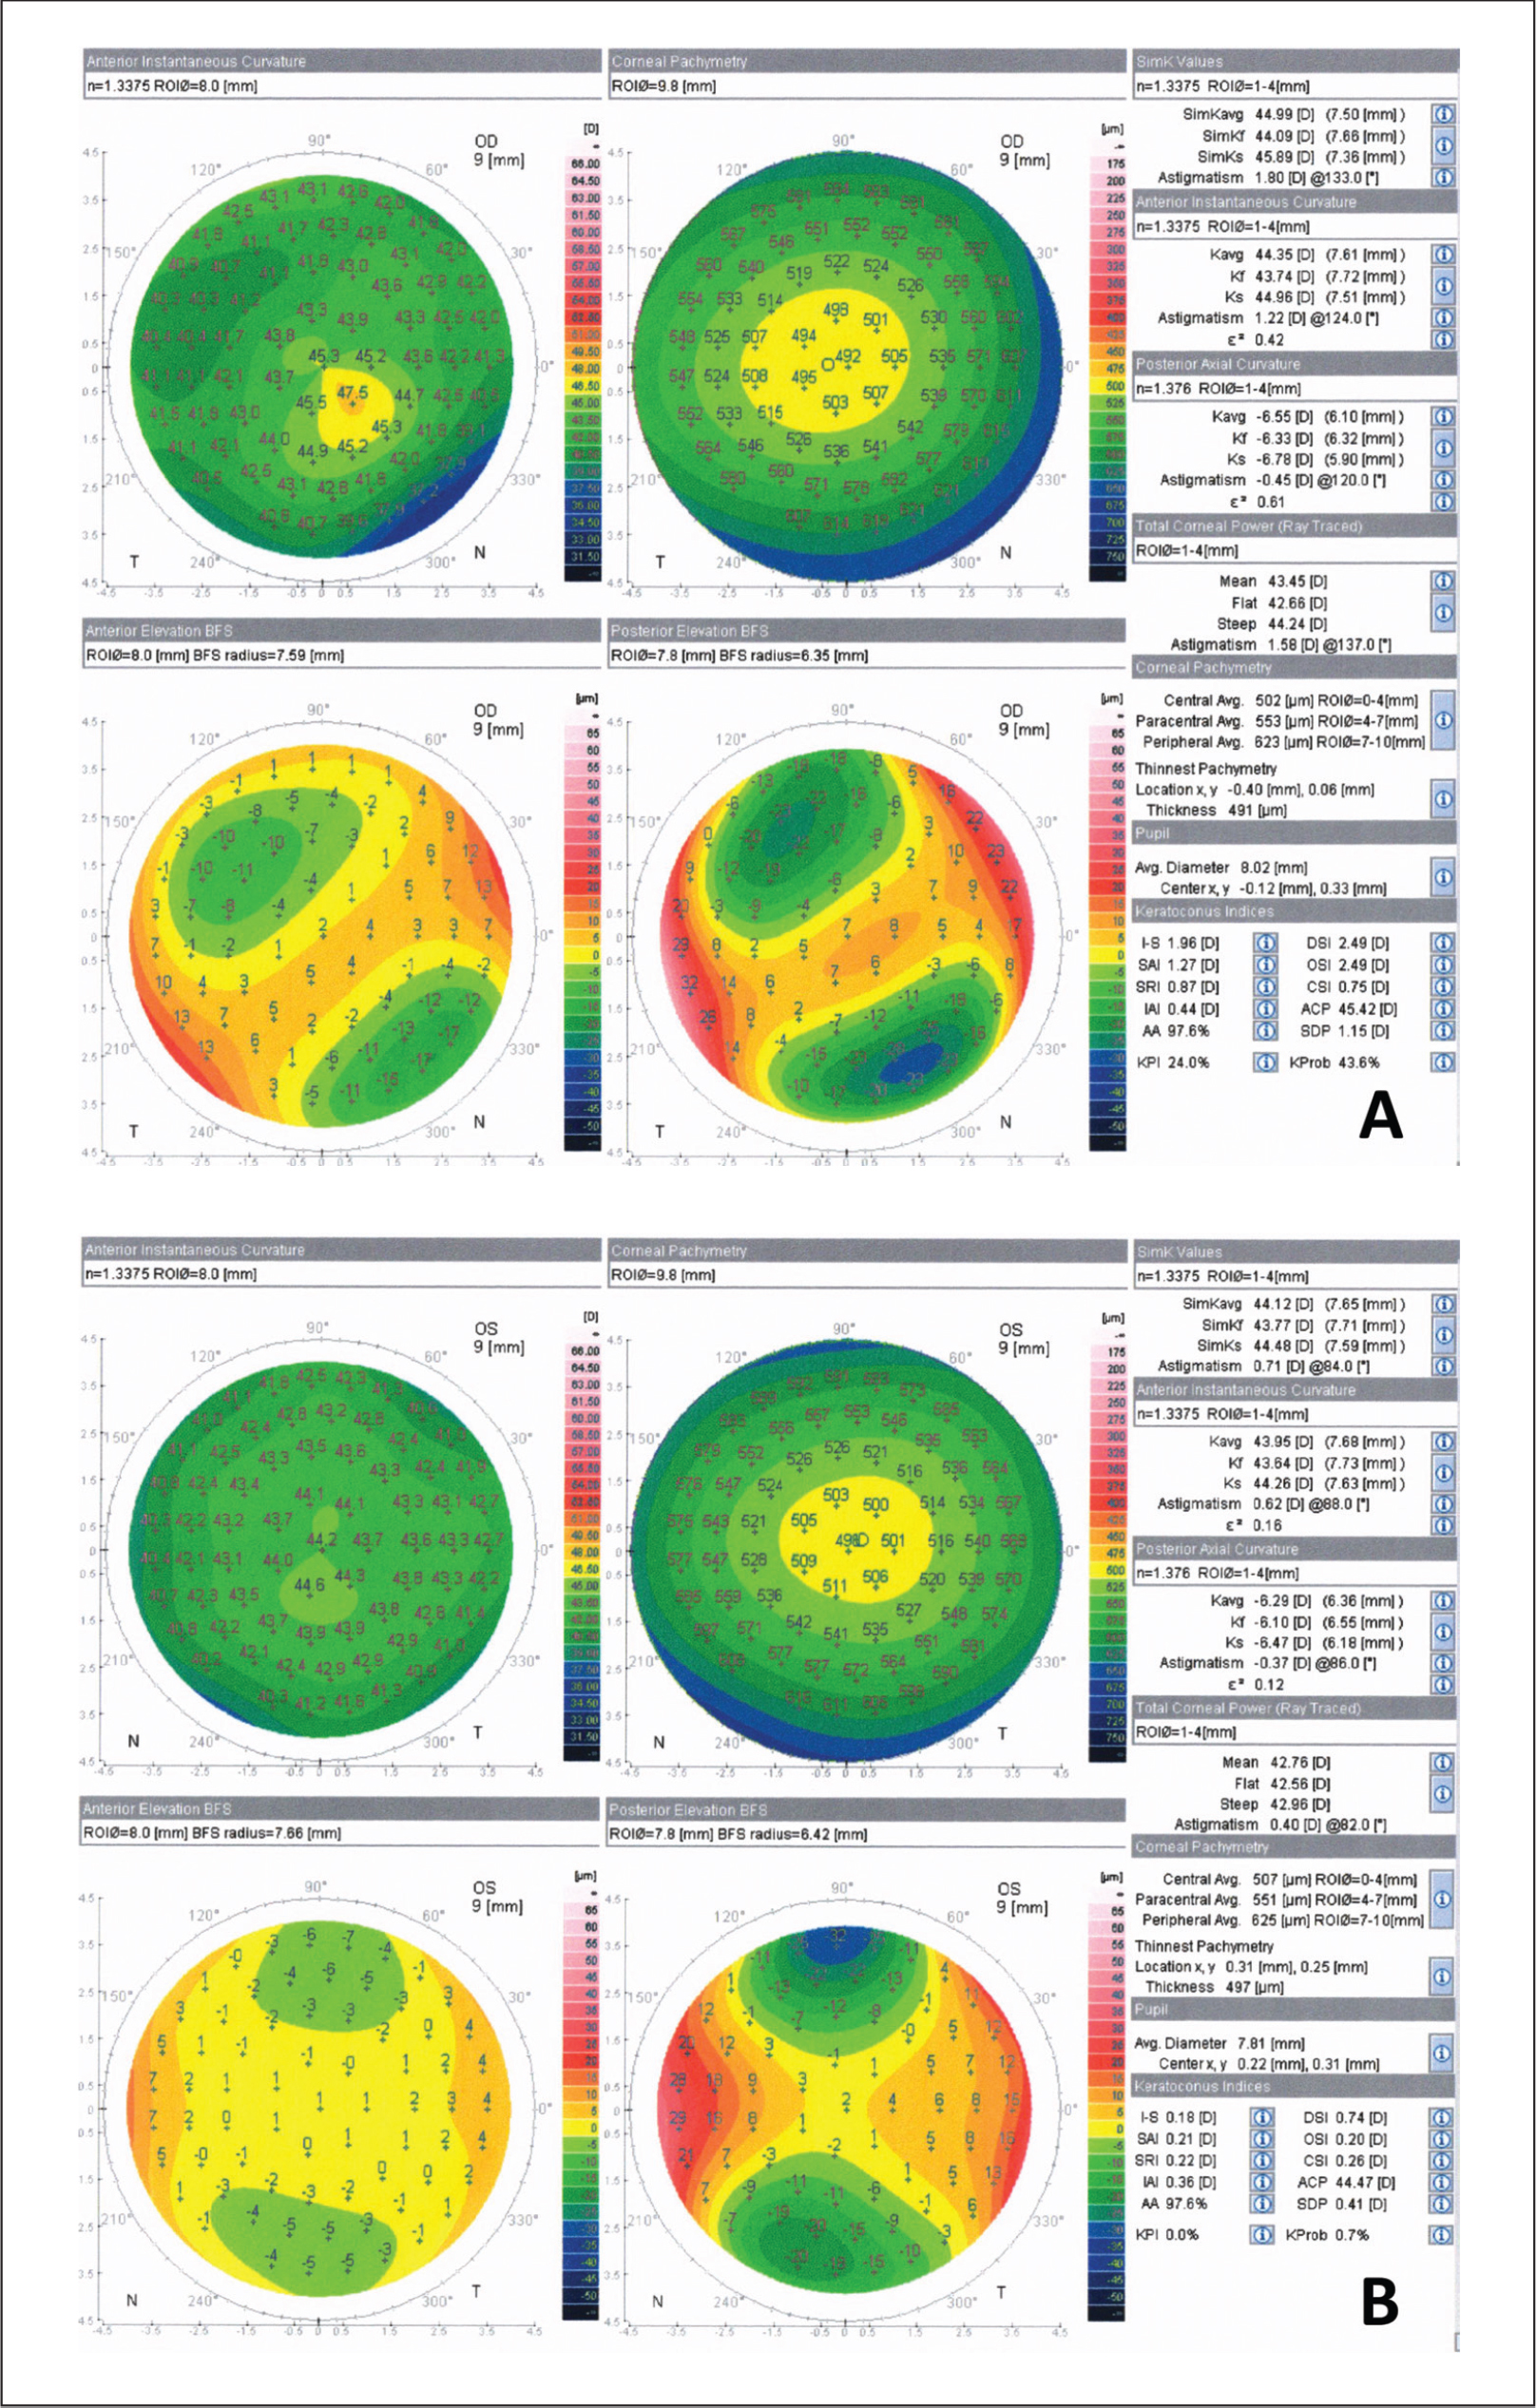 Preoperative Scheimpflug-based corneal topography of the (A) right and (B) left eyes showing inferior steepening with corresponding thinning in the right eye. Anterior curvature map showed a maximum keratometric reading of 47.5 diopters (D) and a thinnest corneal thickness of 491 μm coincident with posterior and relatively anterior elevation and inferior superior asymmetry of 1.96 D. In the left eye, anterior and posterior surface kerato-metric readings were 43.64 and 44.26 D and −6.10 and −6.47 D, respectively, with −0.62 D and 88° of astigmatism. Anterior curvature map showed a maximum keratometric reading of 44.60 D. The thinnest pachymetric reading in the left eye was 497 μm with an inferior-superior index of 0.18 D.